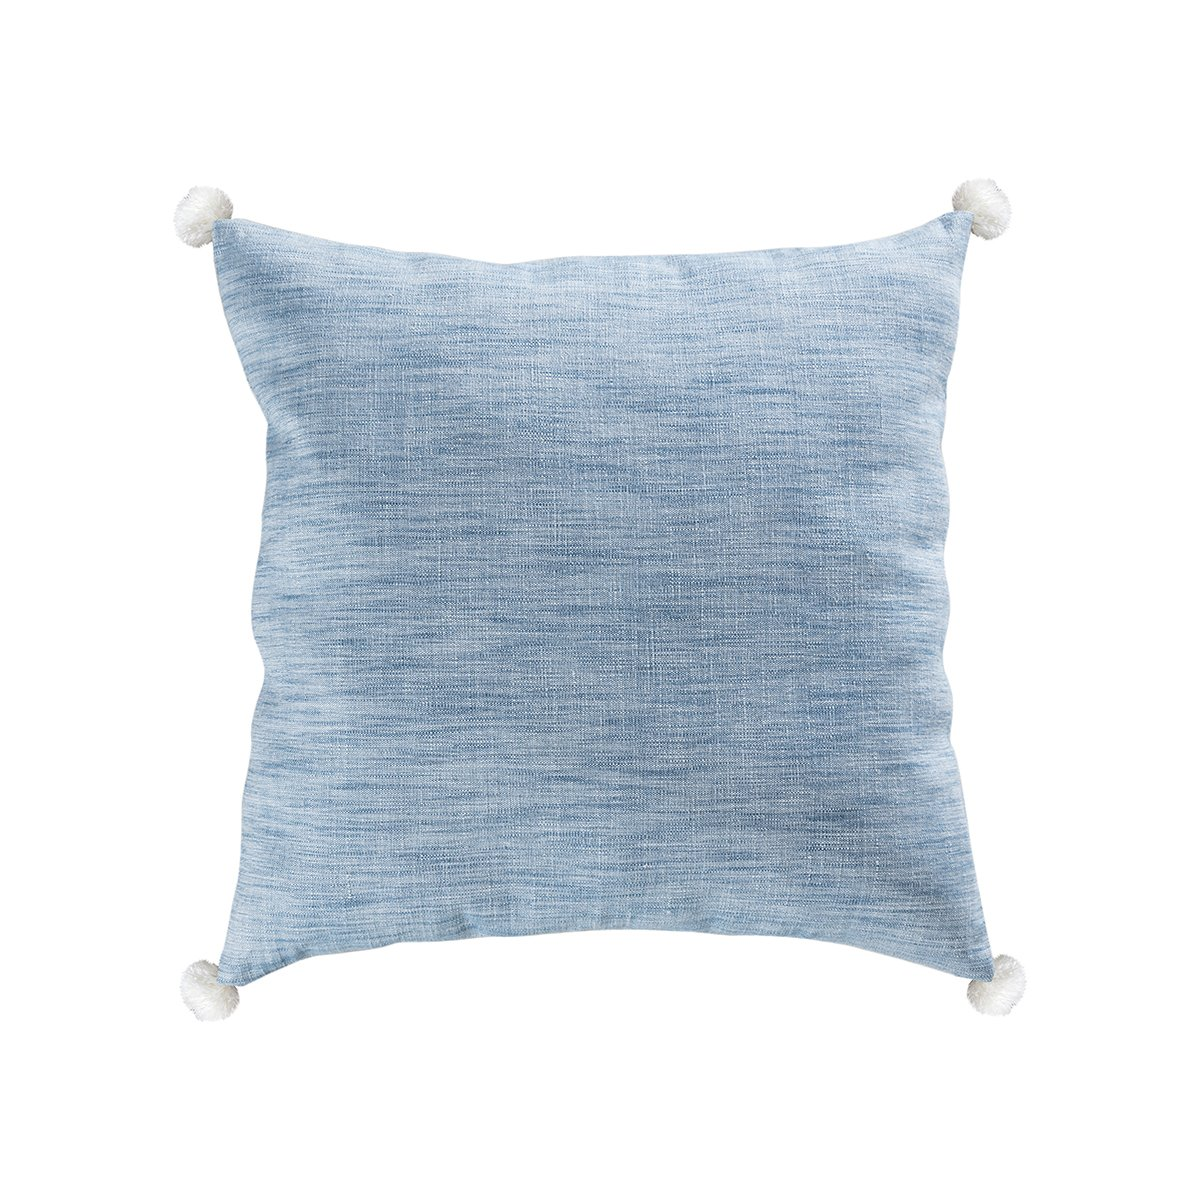 Amazon.com: Pomeroy 906671 bellford Azure almohada 20 x 20 ...